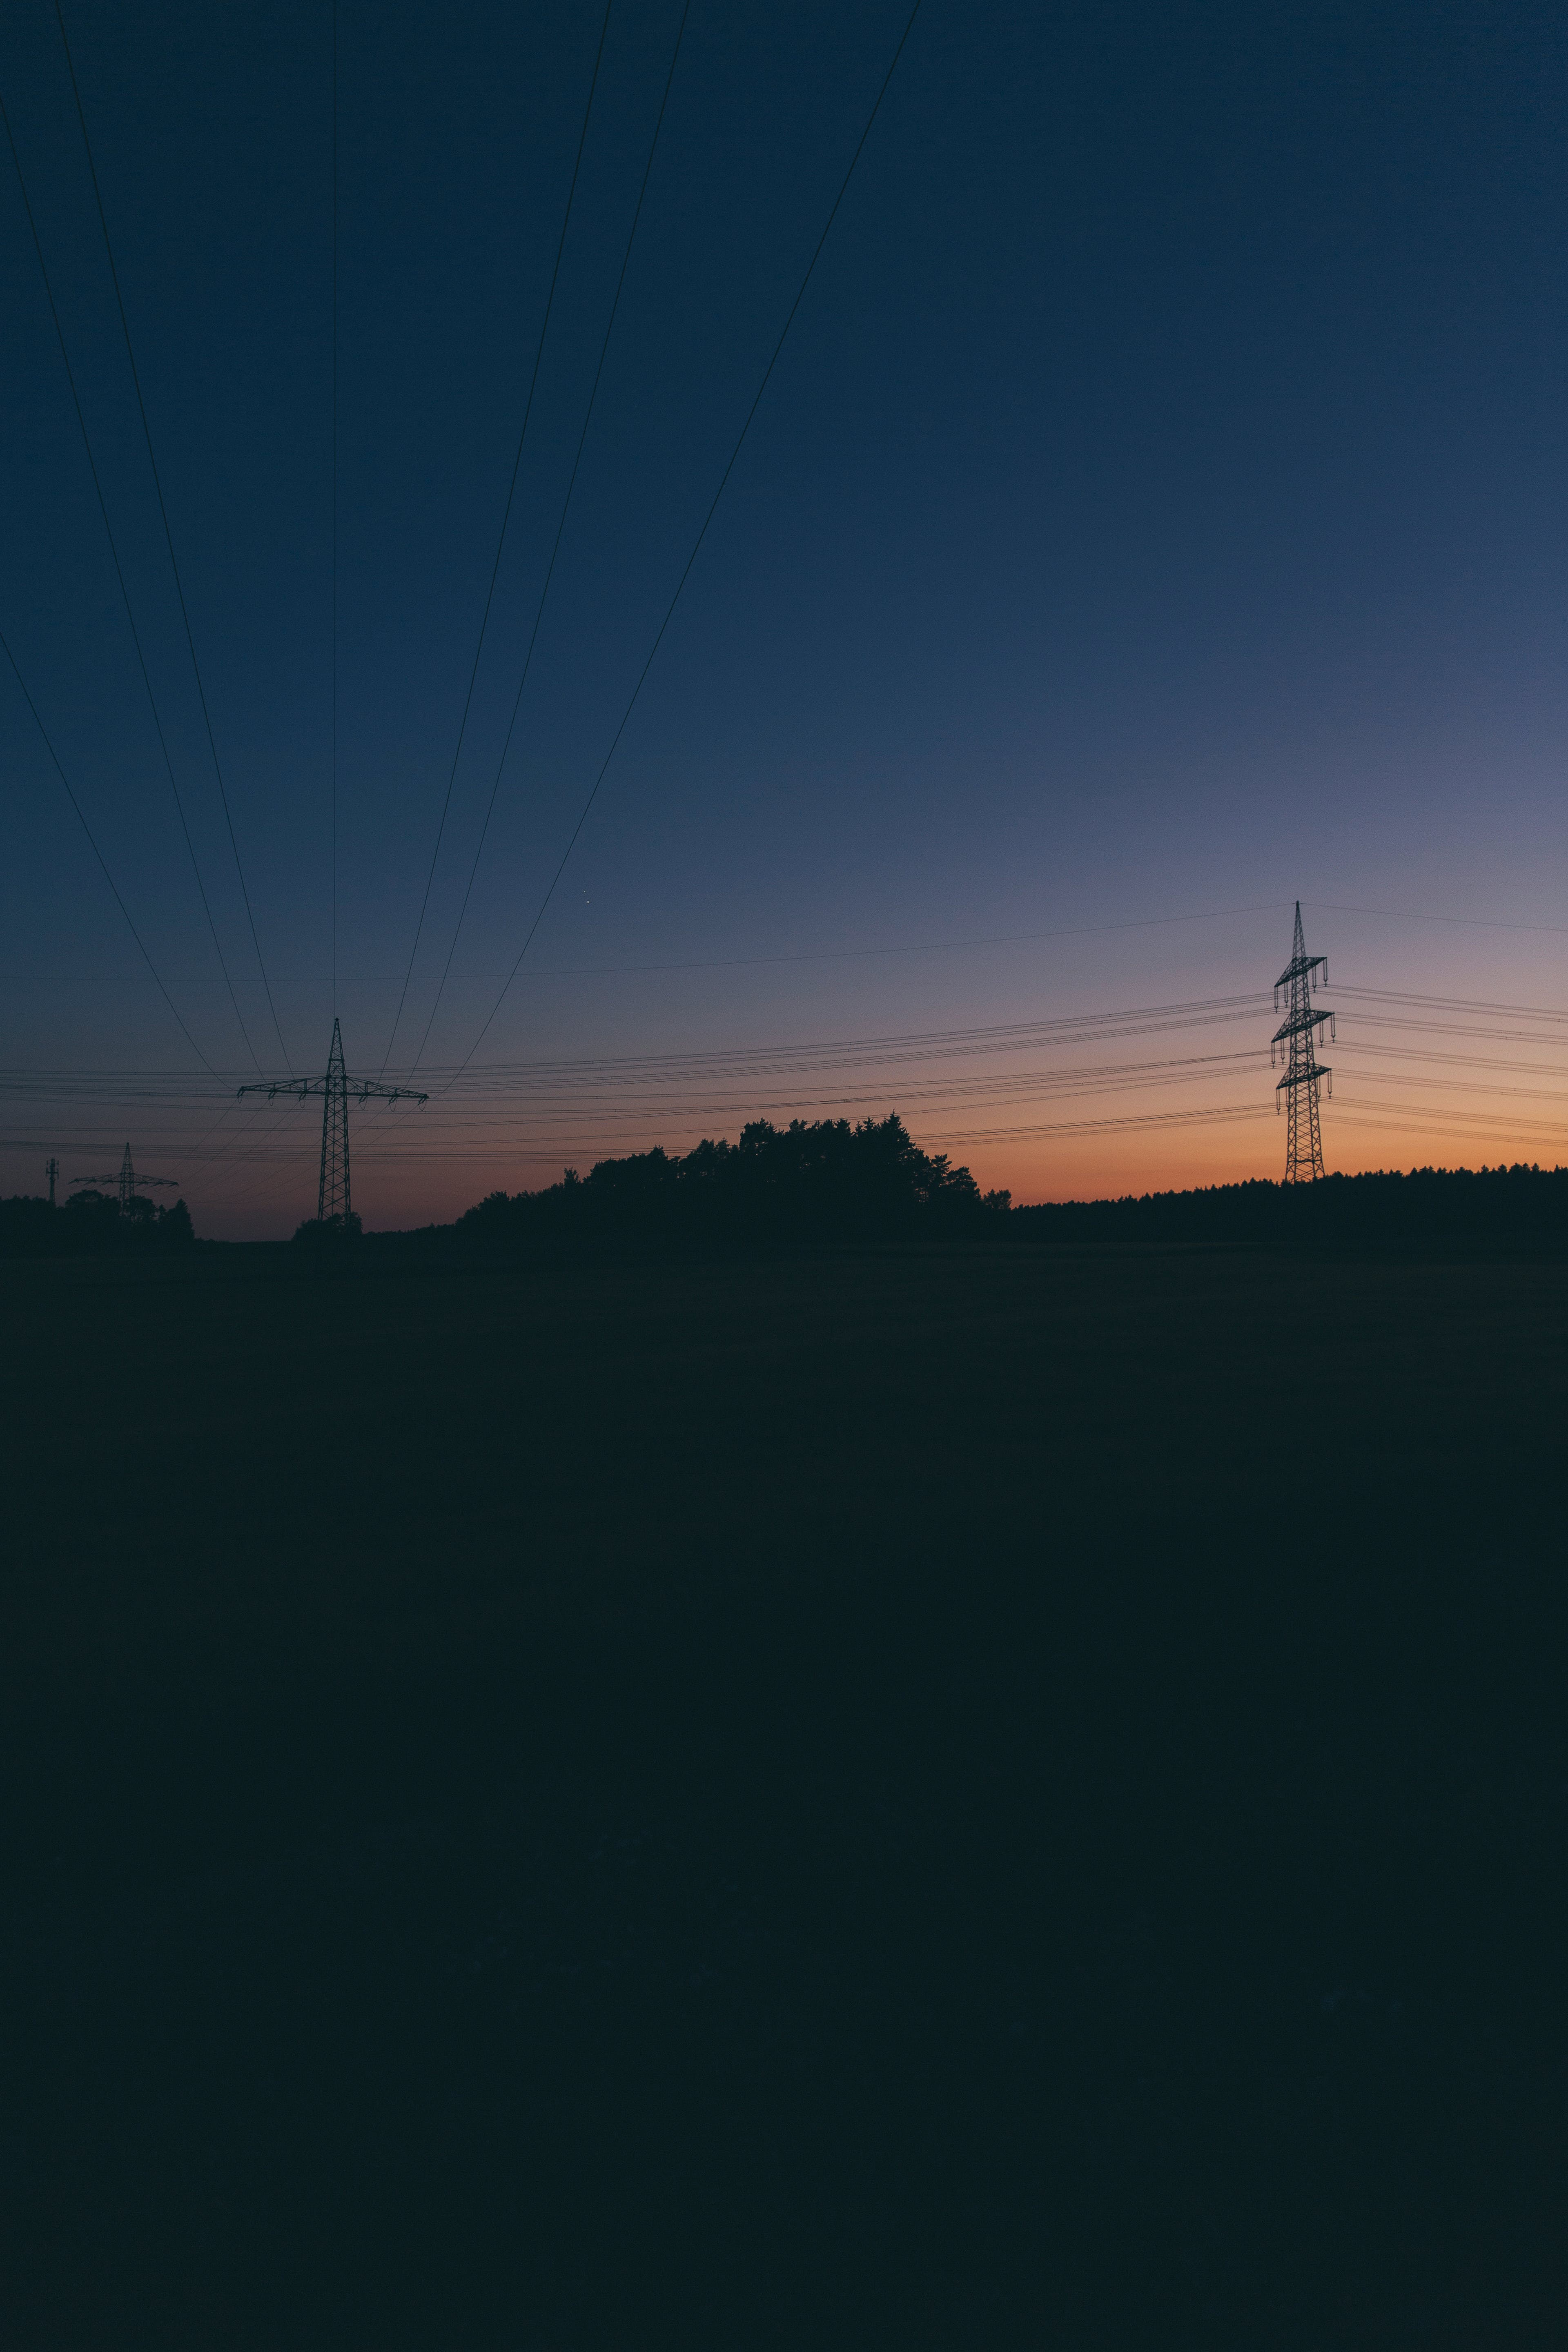 Free stock photo of electrical, electrical tower, energy, power lines